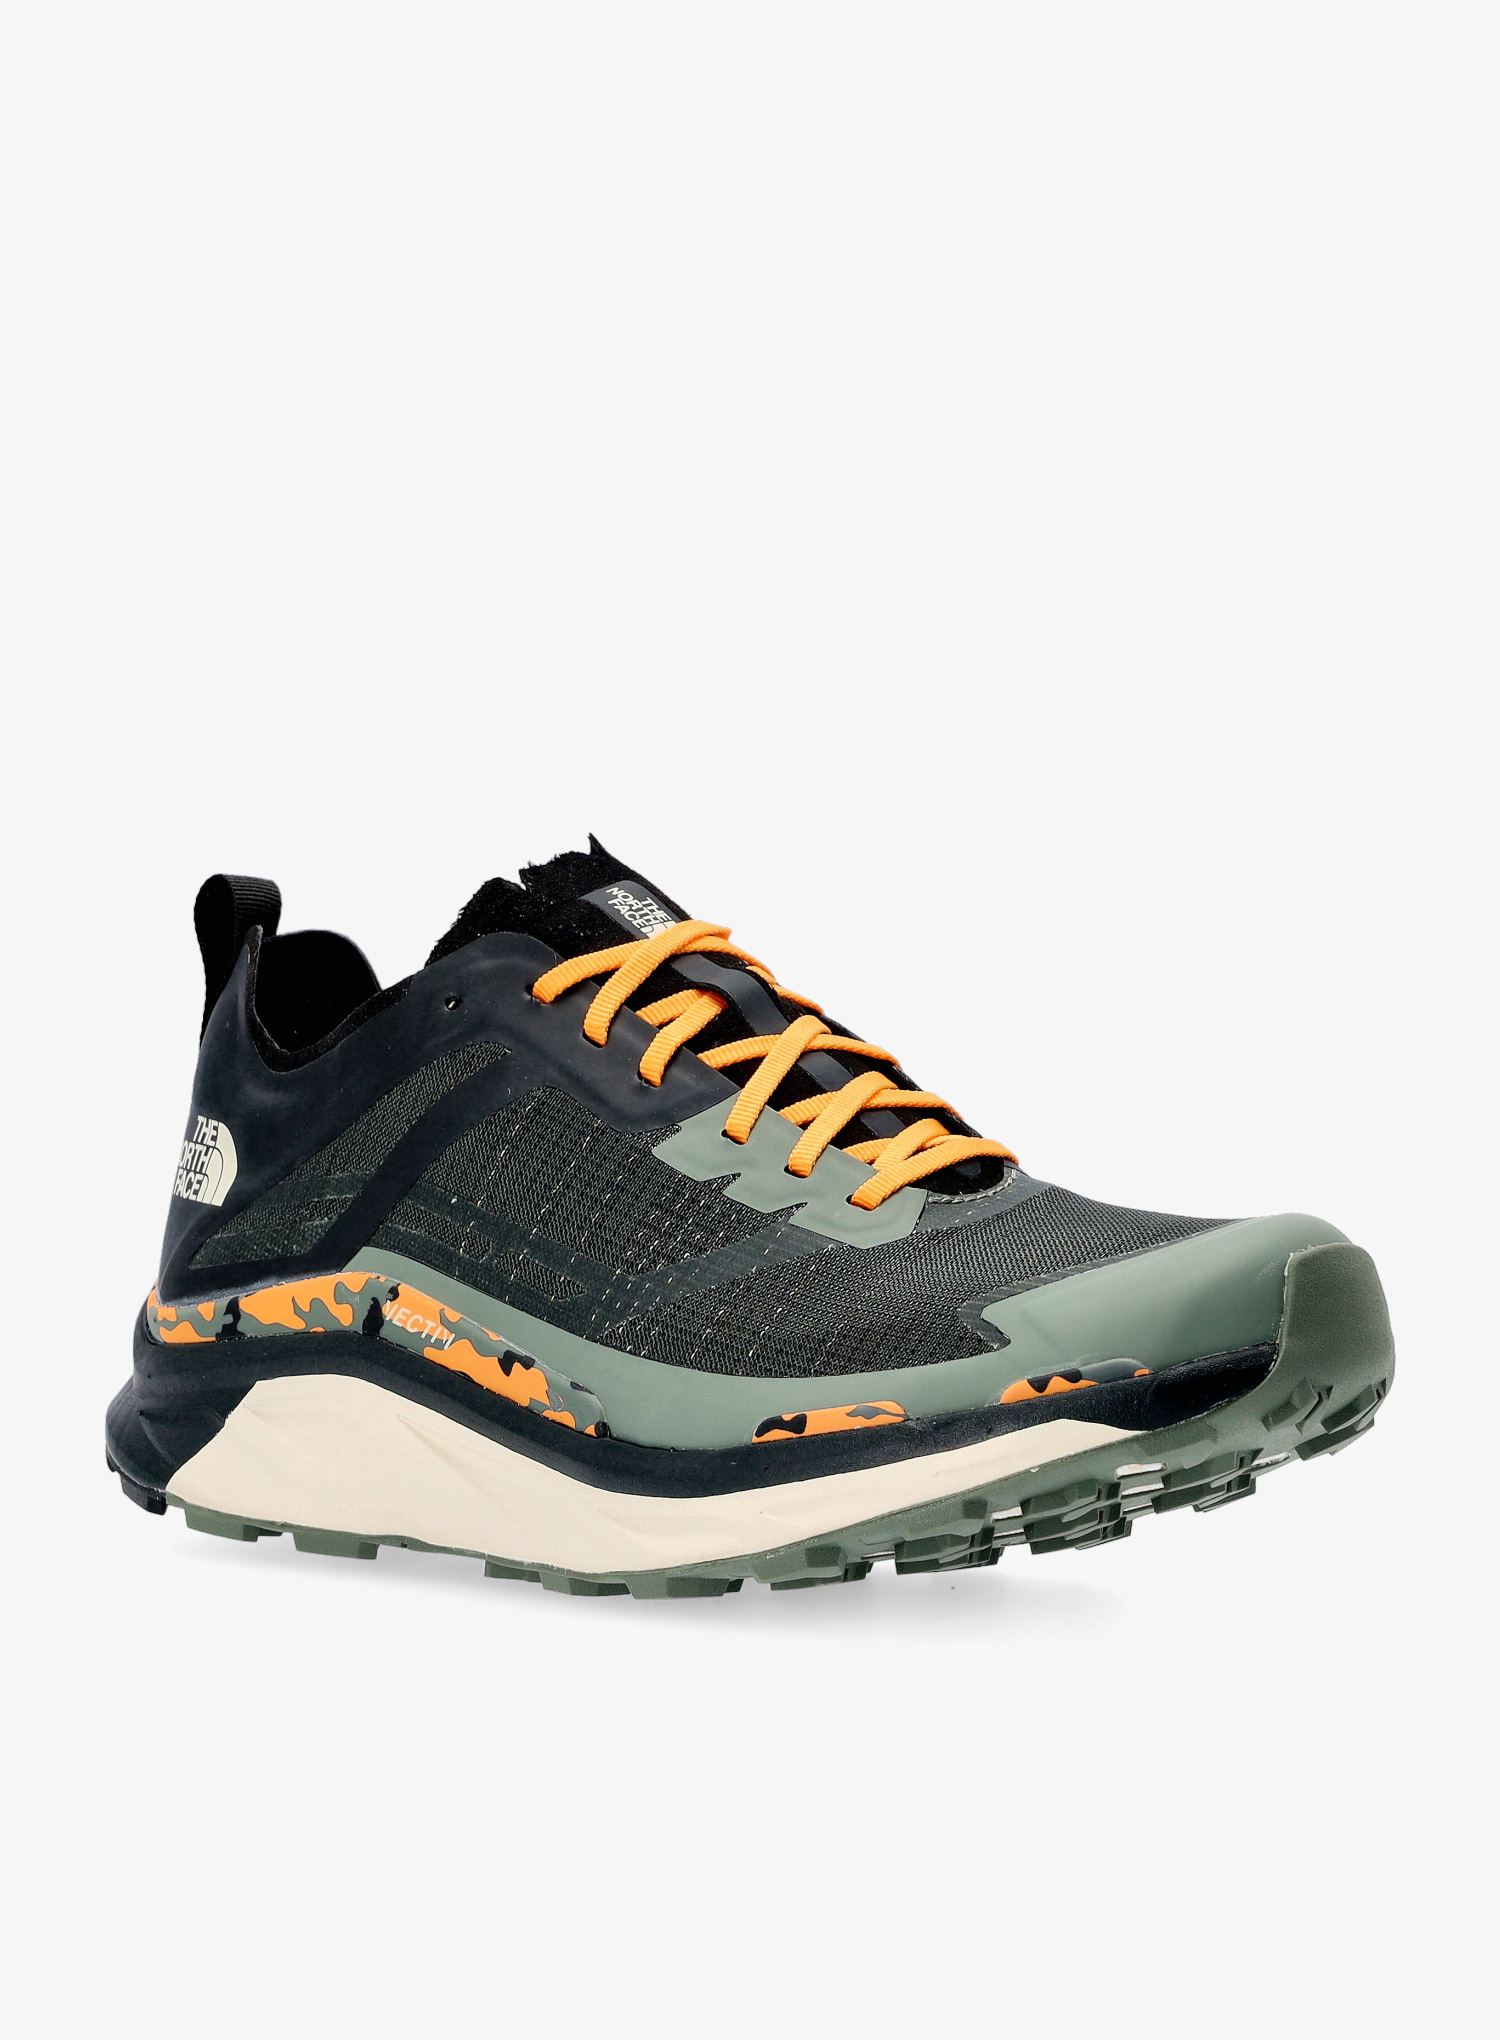 Buty trailowe The North Face Vectiv Infinite LTD - agave green/gold - zdjęcie nr. 3